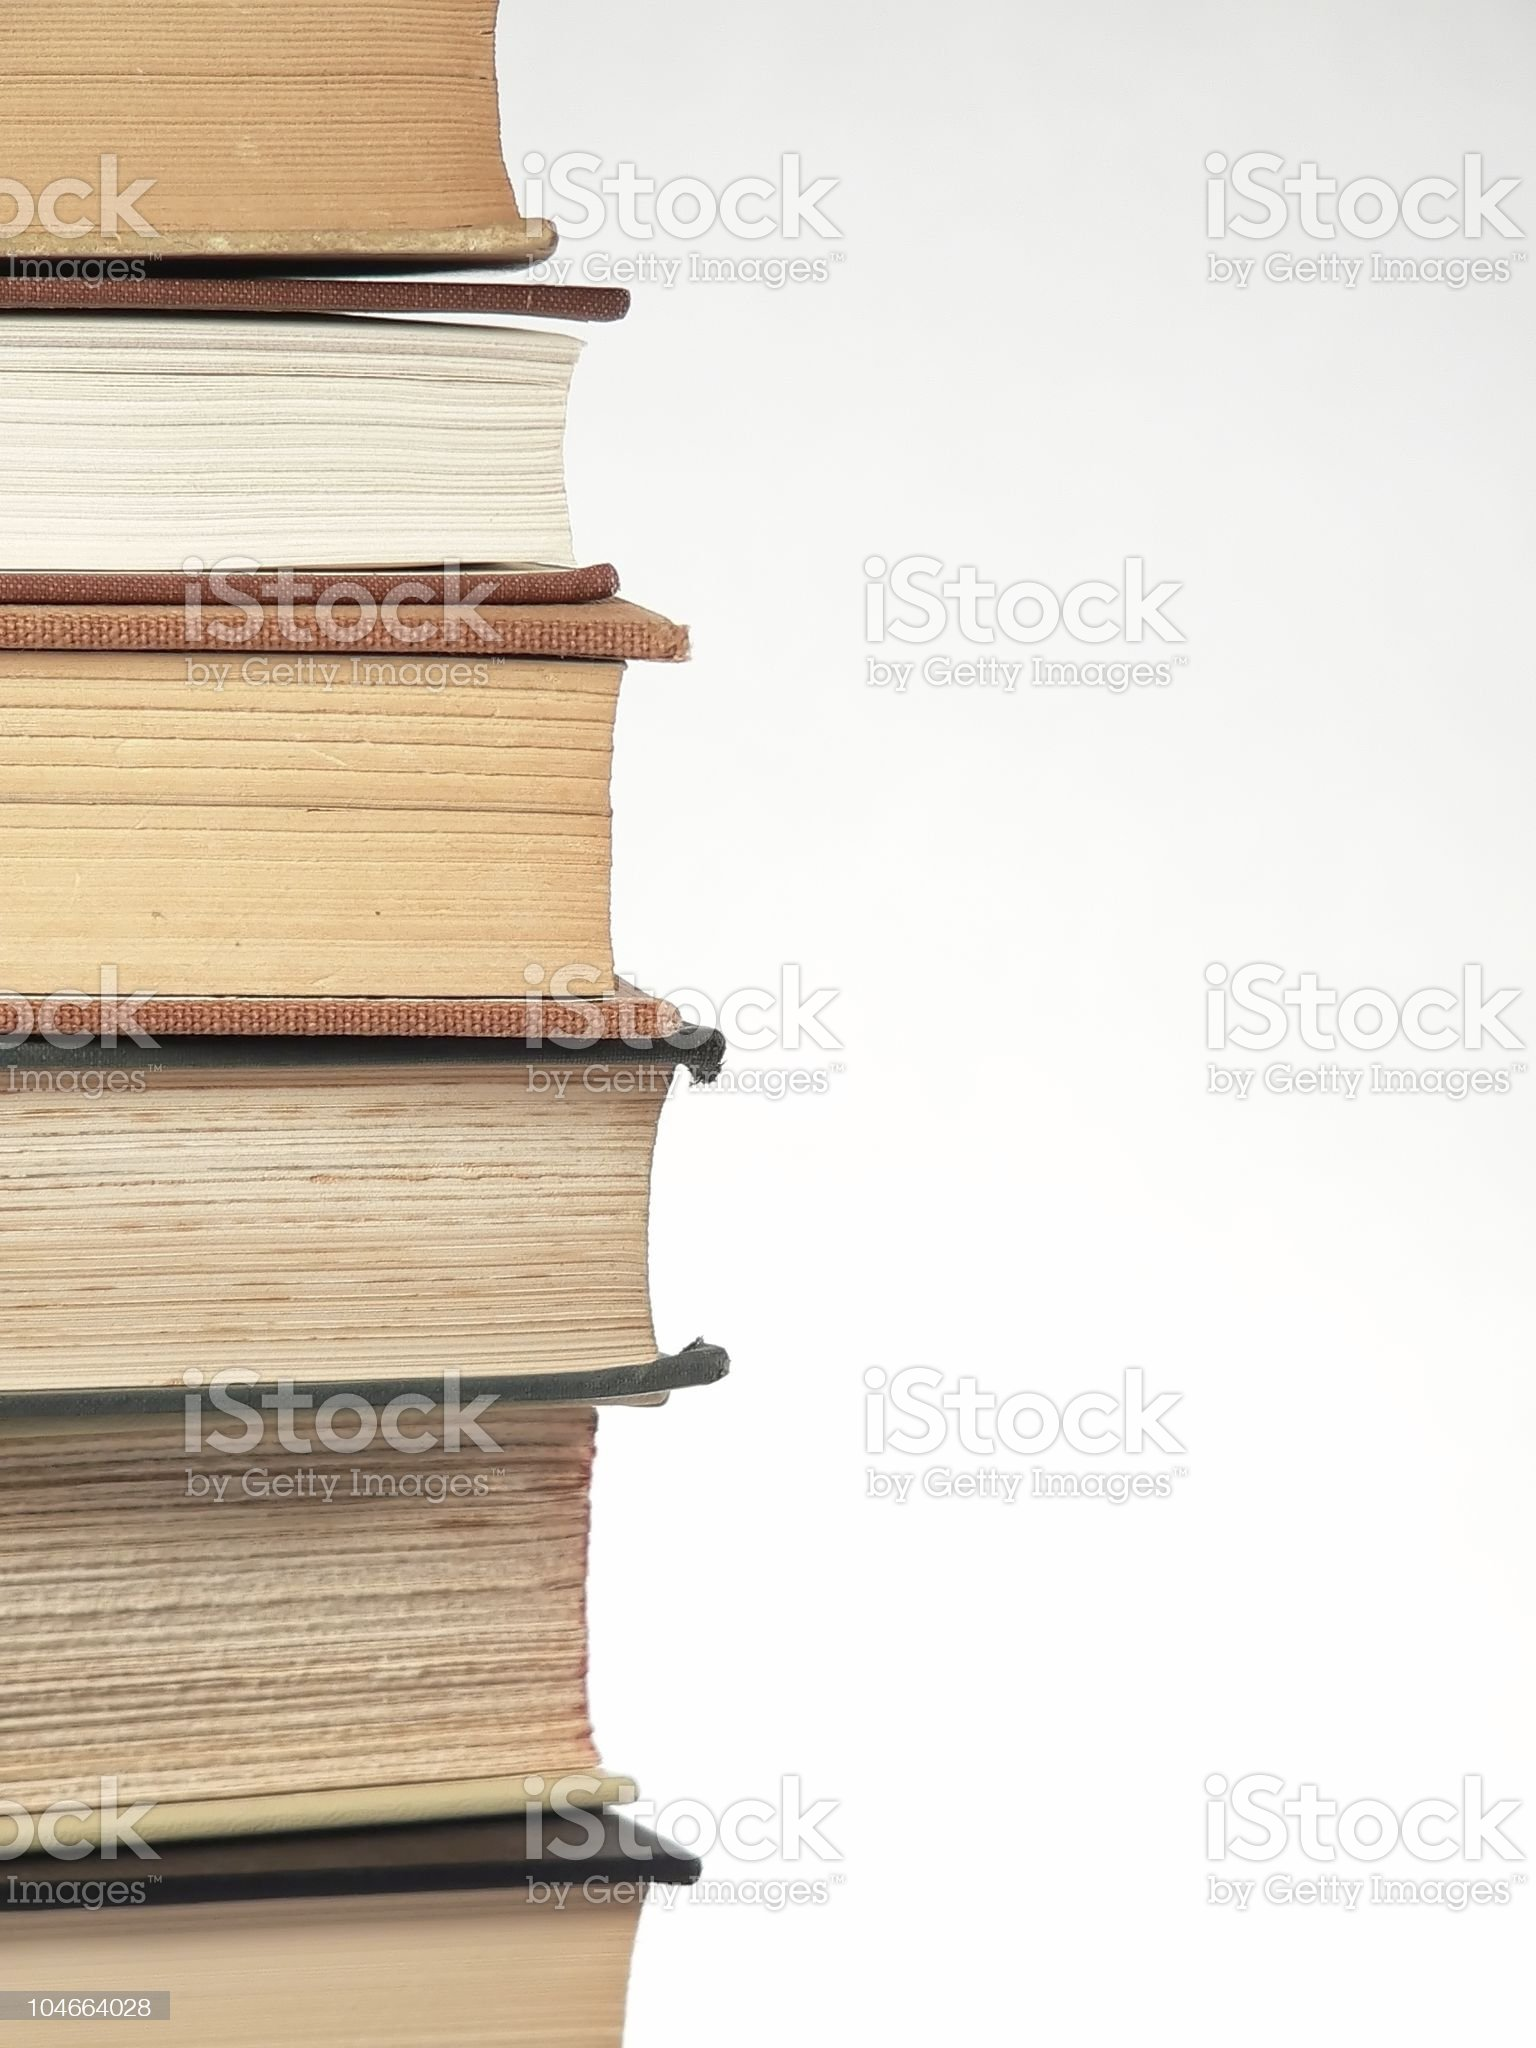 Stacked Books royalty-free stock photo